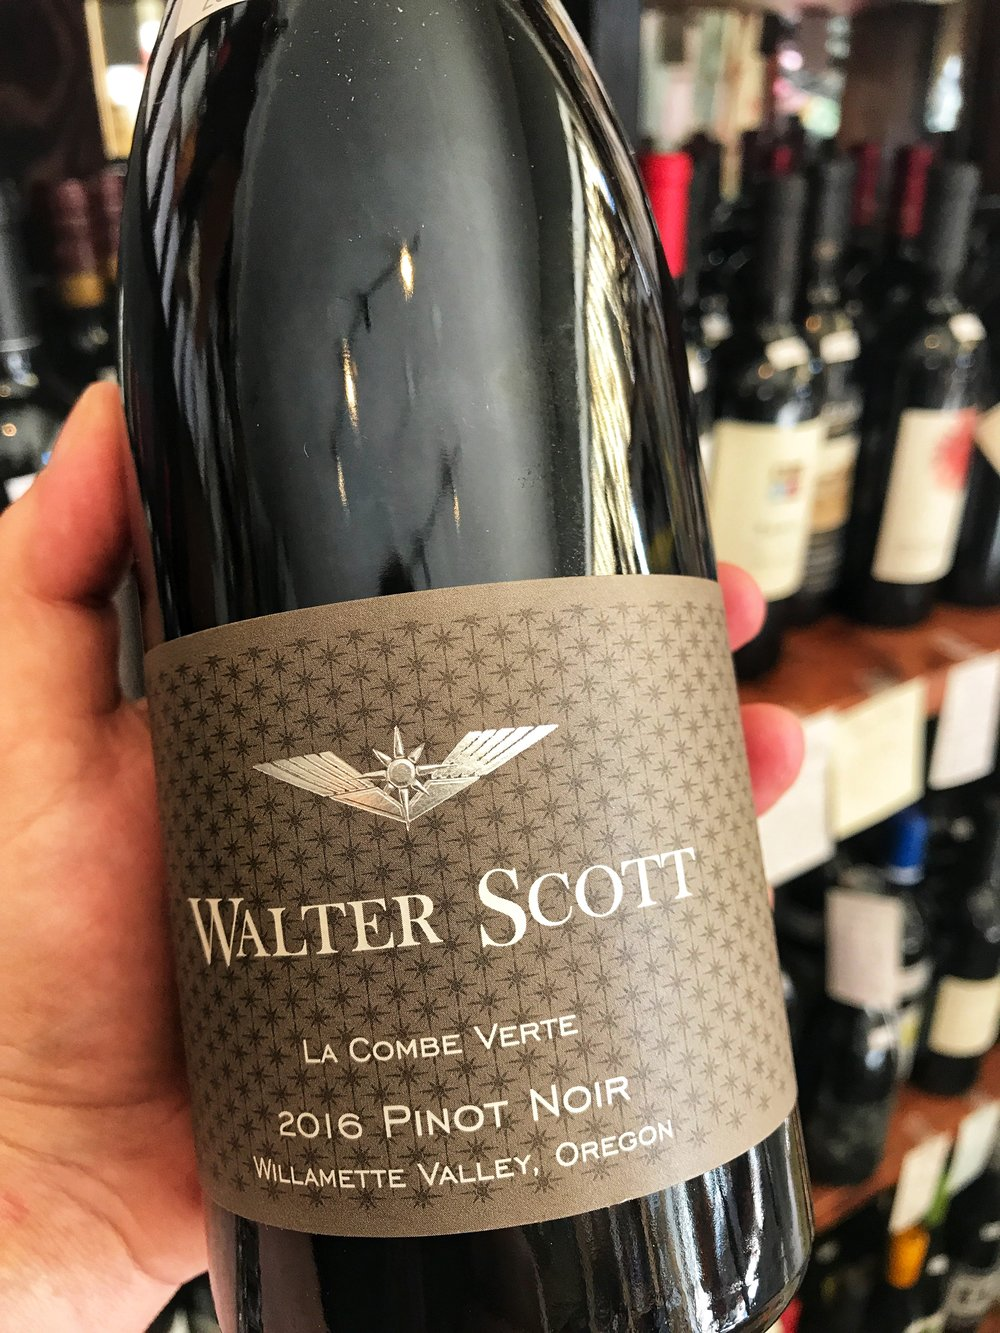 "2016 Walter Scott ""La Combe Verte"" Pinot Noir, Willamette Valley $26.99 - For the 2016 vintage, La Combe Verte is composed primarily from Eola-Amity Hills sources, with barrels of Vojtilla and Freedom Hill Vineyards added in order to thoughtfully paint our unique picture of the Willamette Valley. This Pinot Noir is 15% whole cluster, fermented with ambient yeast, and aged in barrel for 10 months with 30% new oak barrels. The resulting wine is a serious and beautiful example of the 2016 vintage, layered with power and structure giving this wine immediate appeal, alongside the ability to be tucked into your cellar for several years. Layers of red cherries, plums & spicy earth fill the nose. The fruit, tannins and acid all come together to make the wine our version of the complete package."